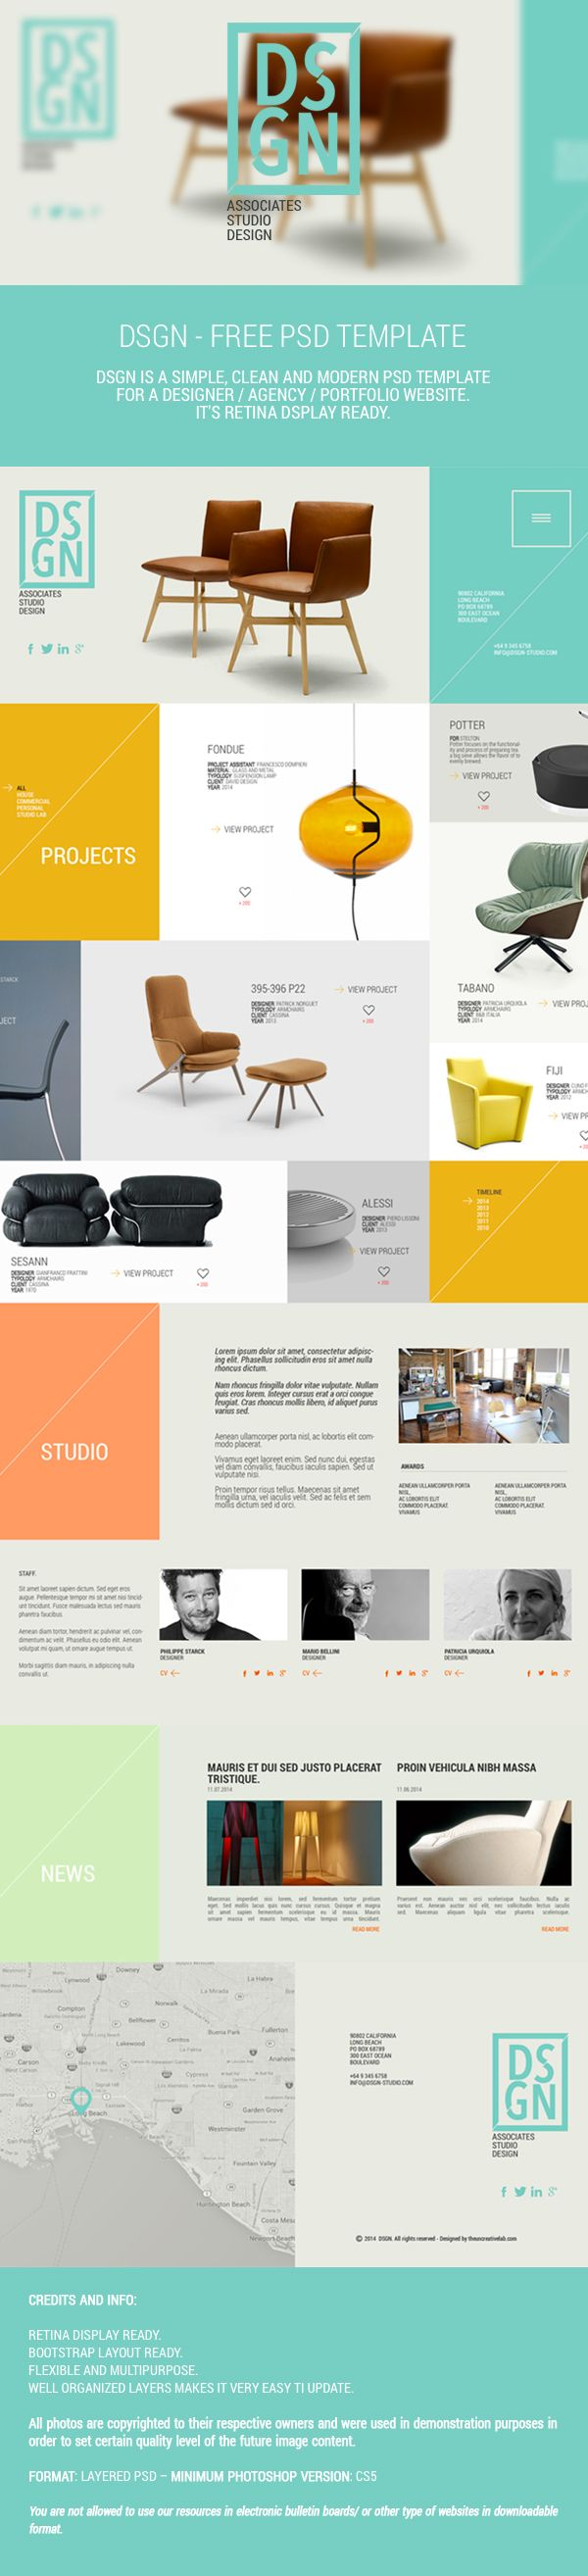 DSGN - Free PSD by michele cialone, via Behance - ECサイト